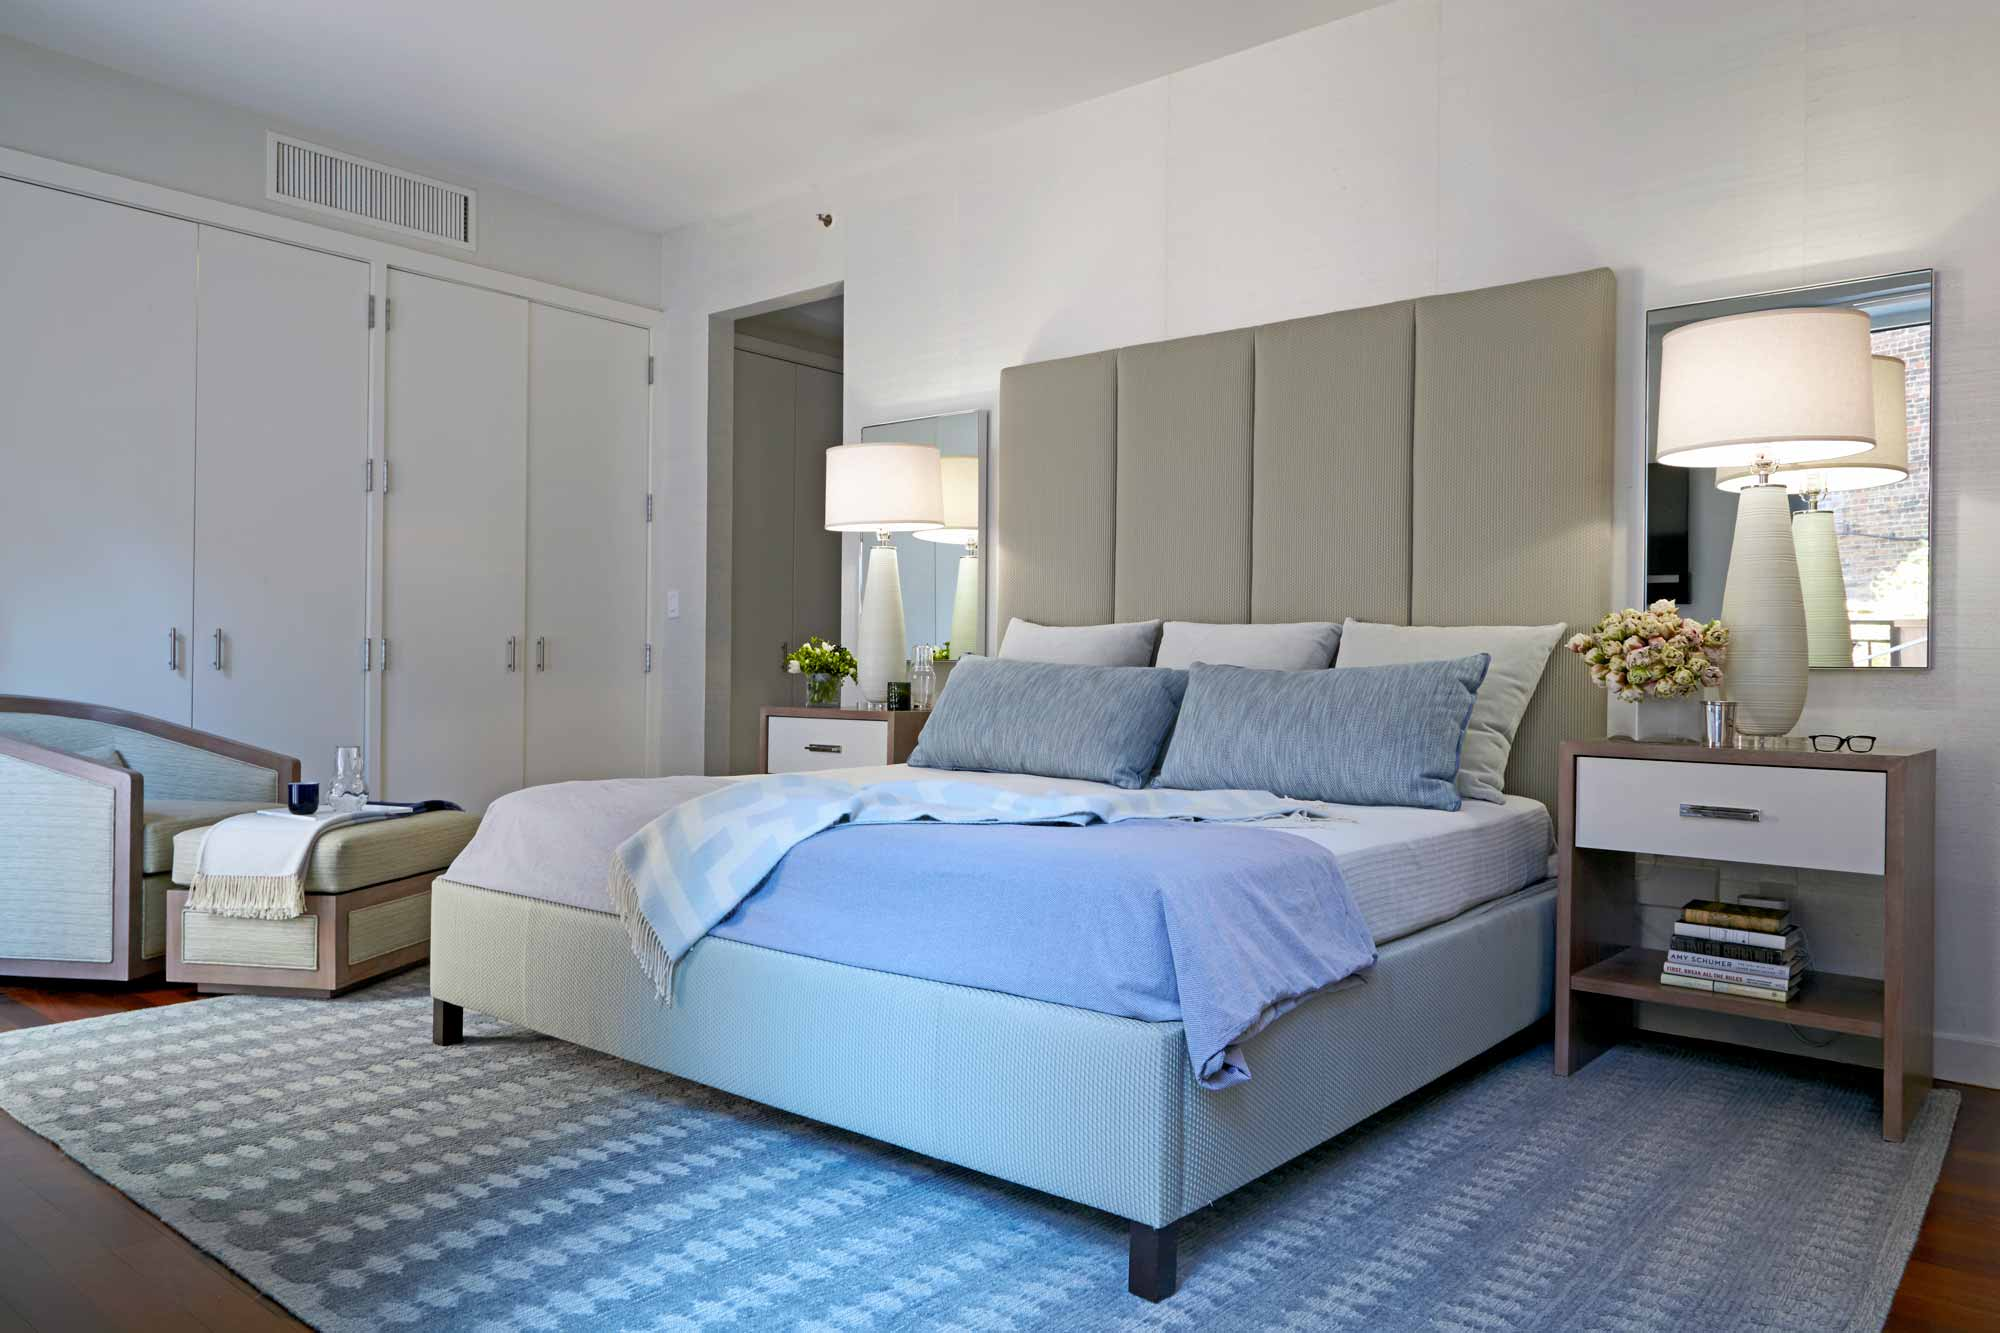 brooke moorhead design west village family comfort bedroom